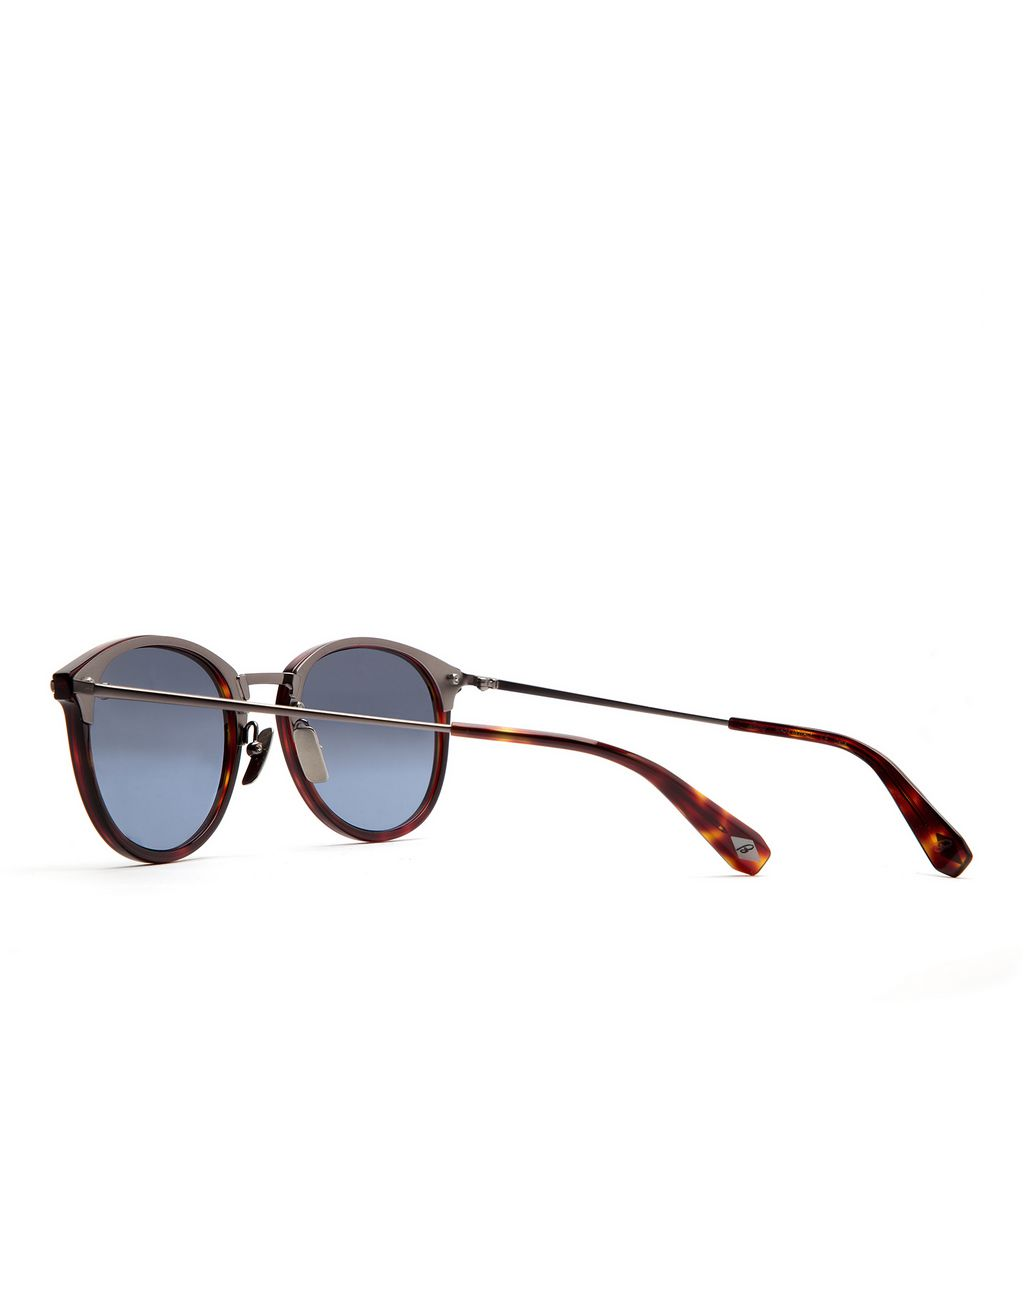 BRIONI Shiny Dark Havana Sunglasses with Silver Gradient Lenses Sunglasses [*** pickupInStoreShippingNotGuaranteed_info ***] d